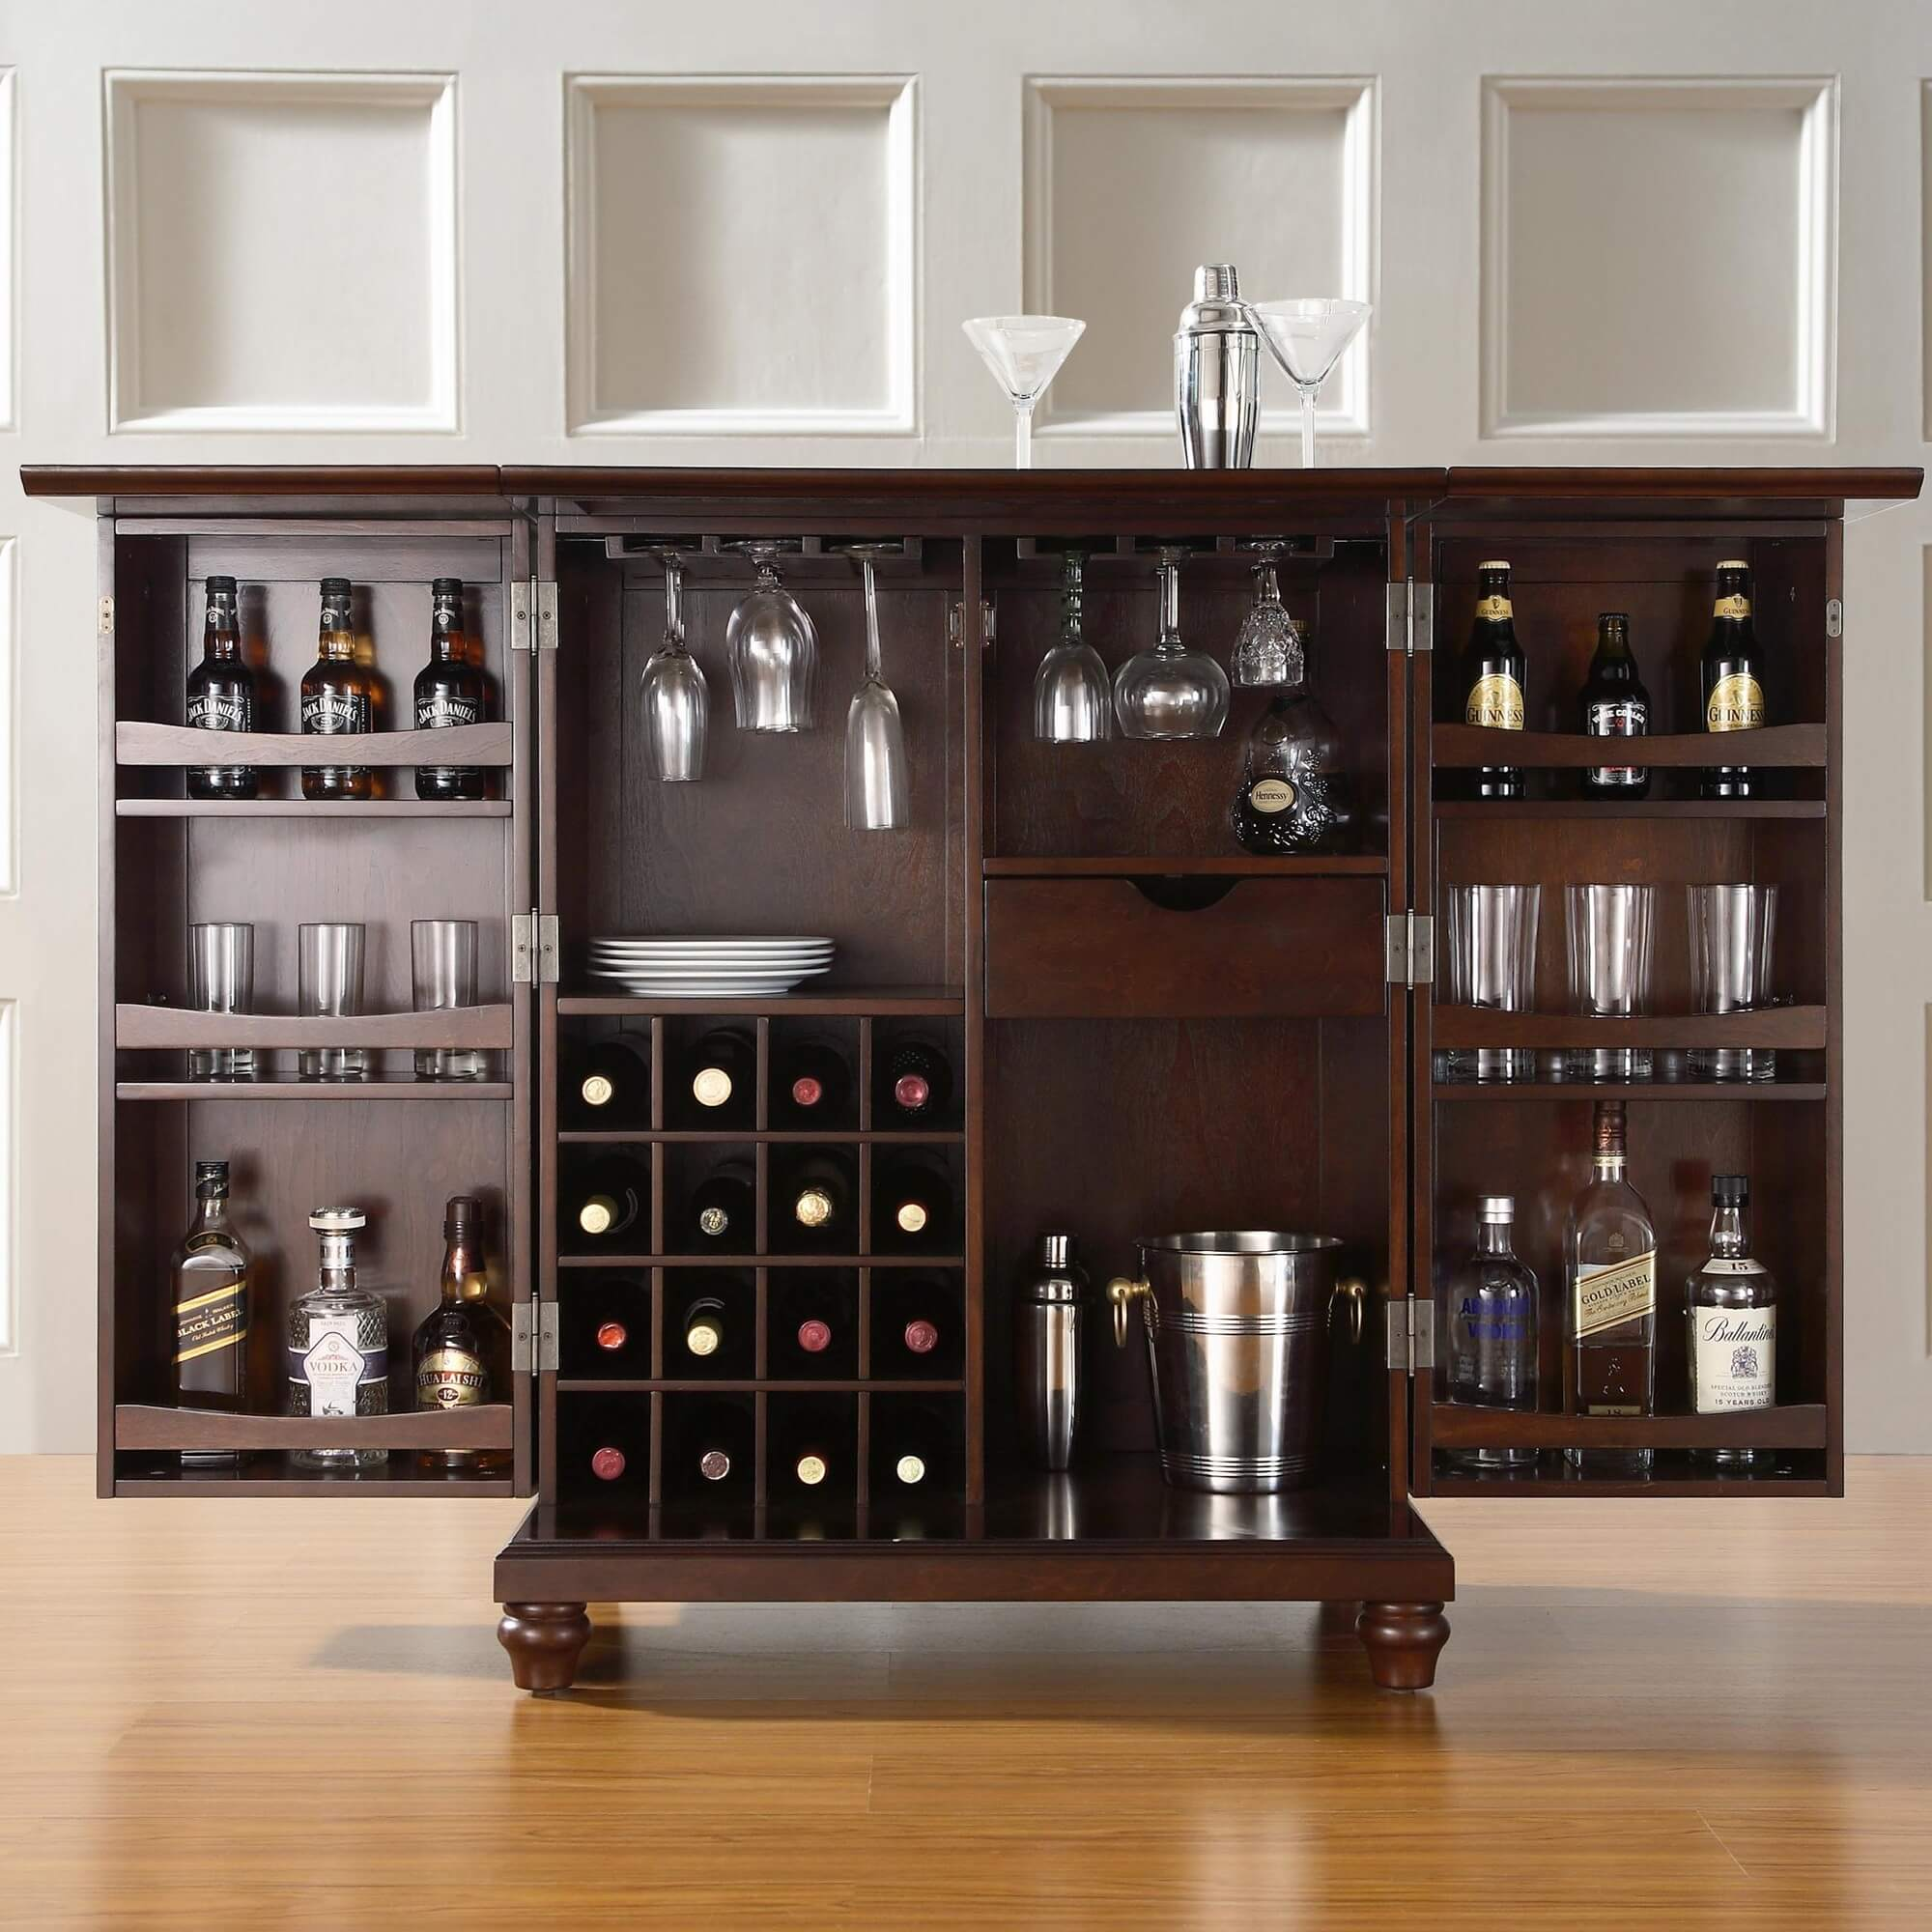 top home bar cabinets sets  wine bars (). emejing modern bar cabinet designs for home ideas  interior